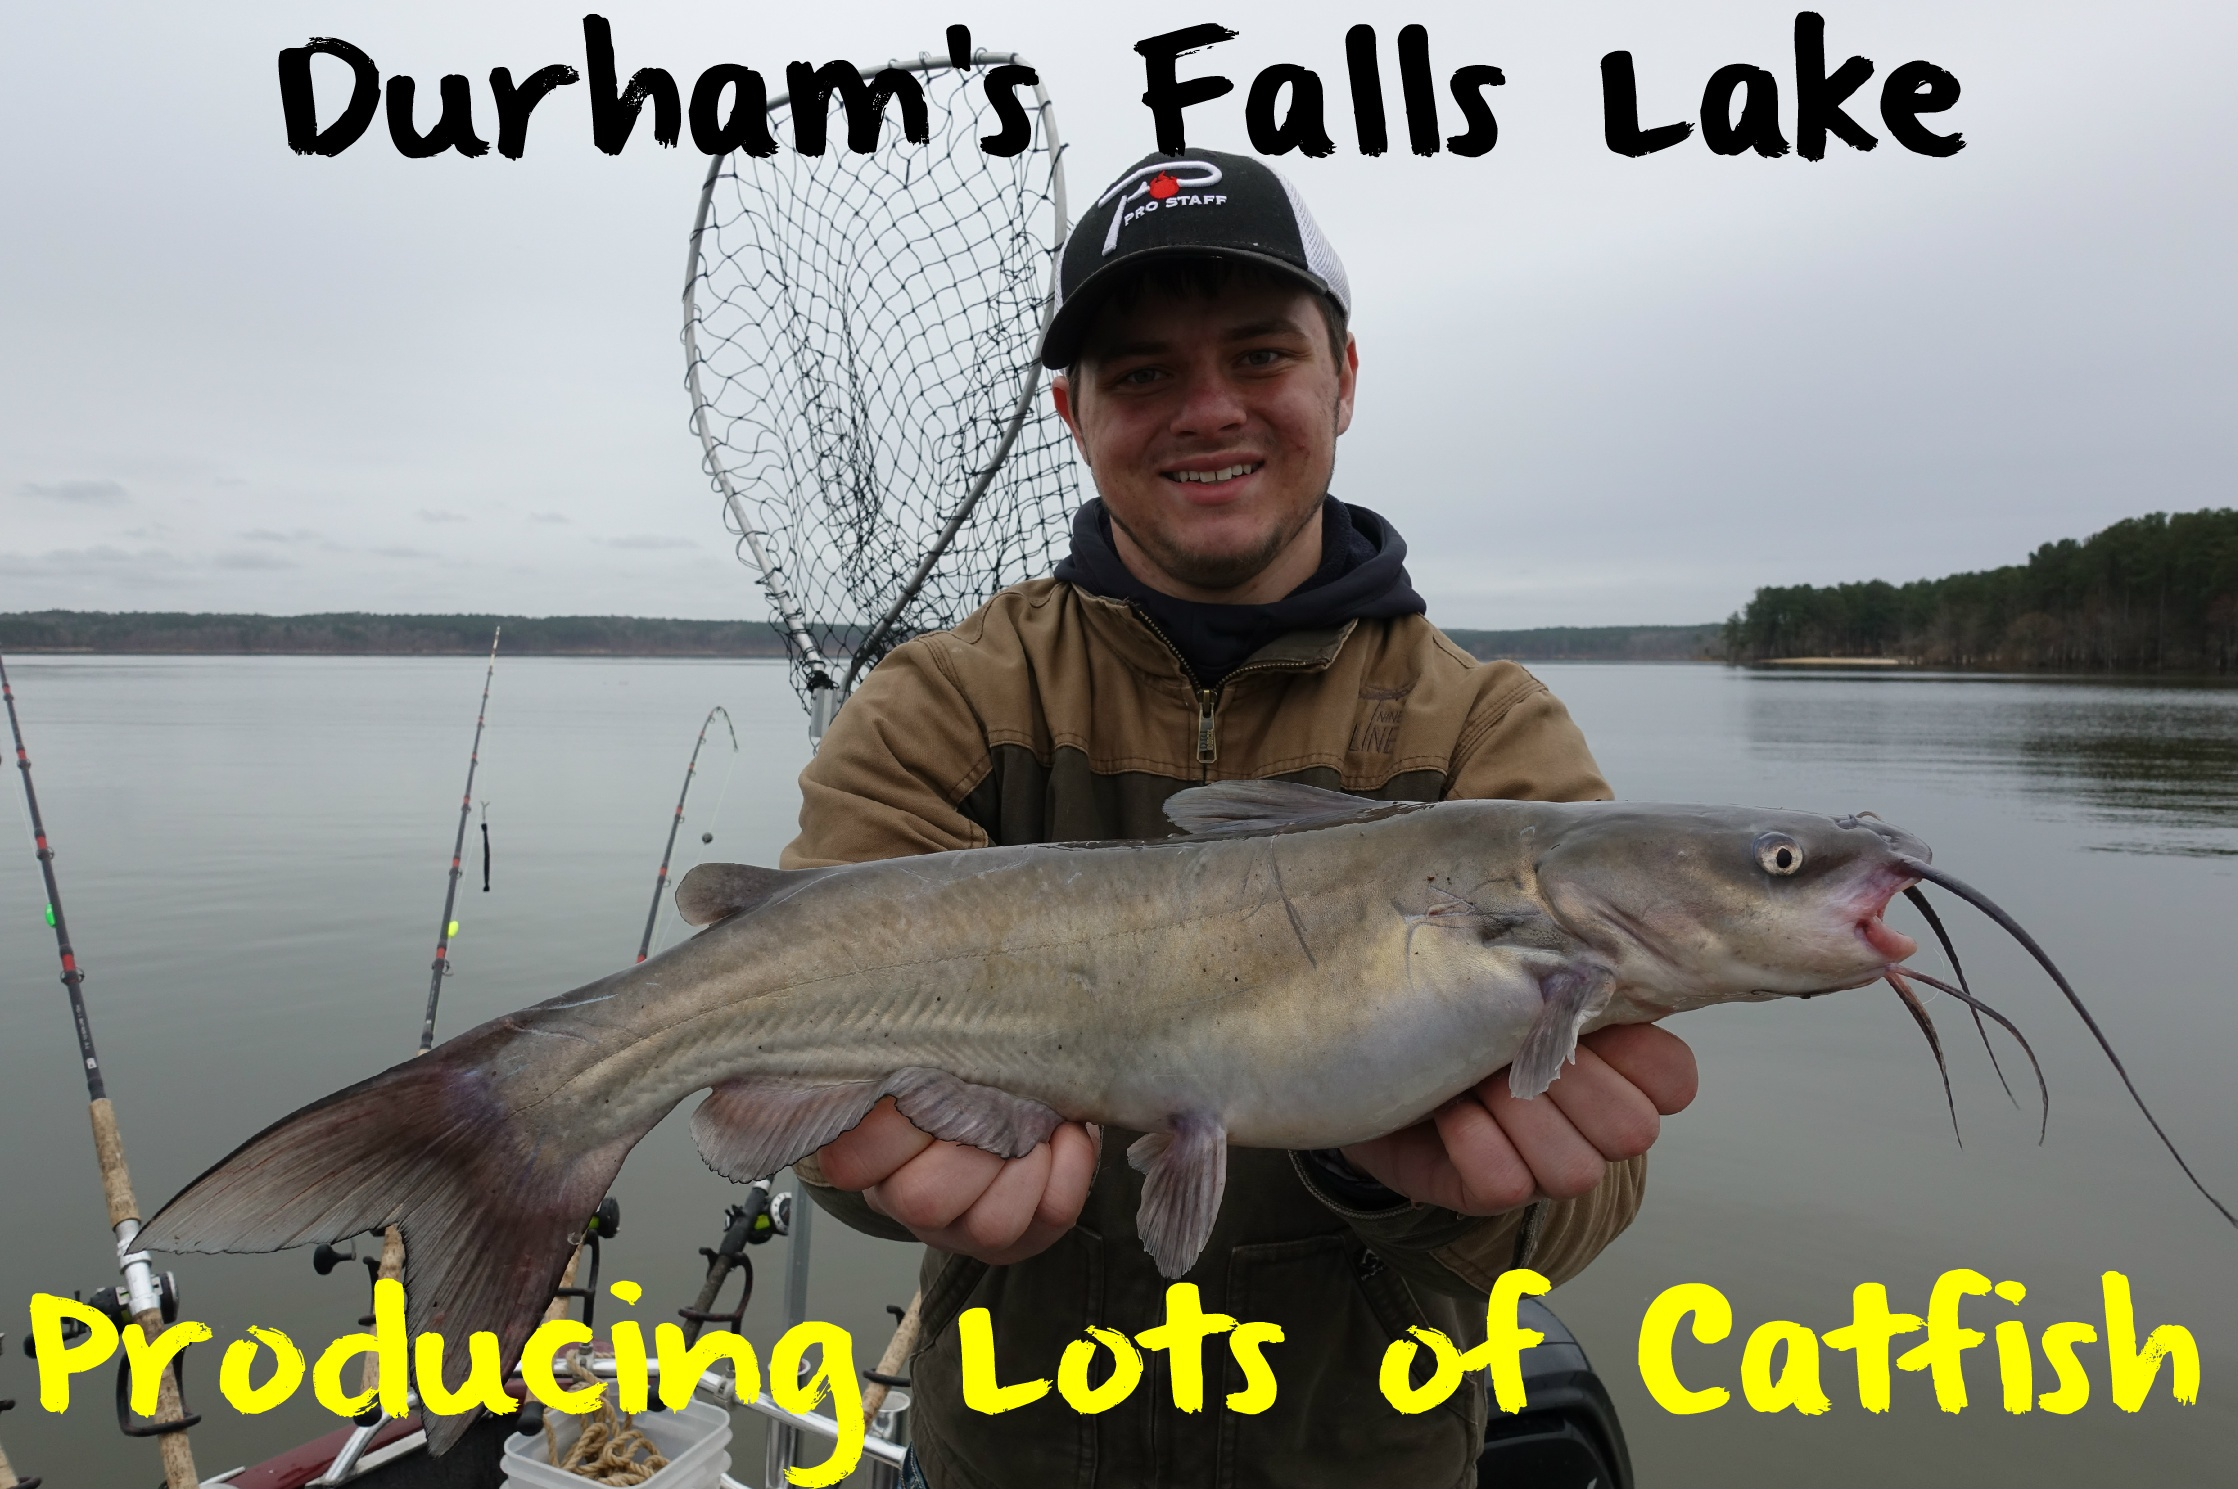 How to catch a catfish - preparation for fishing